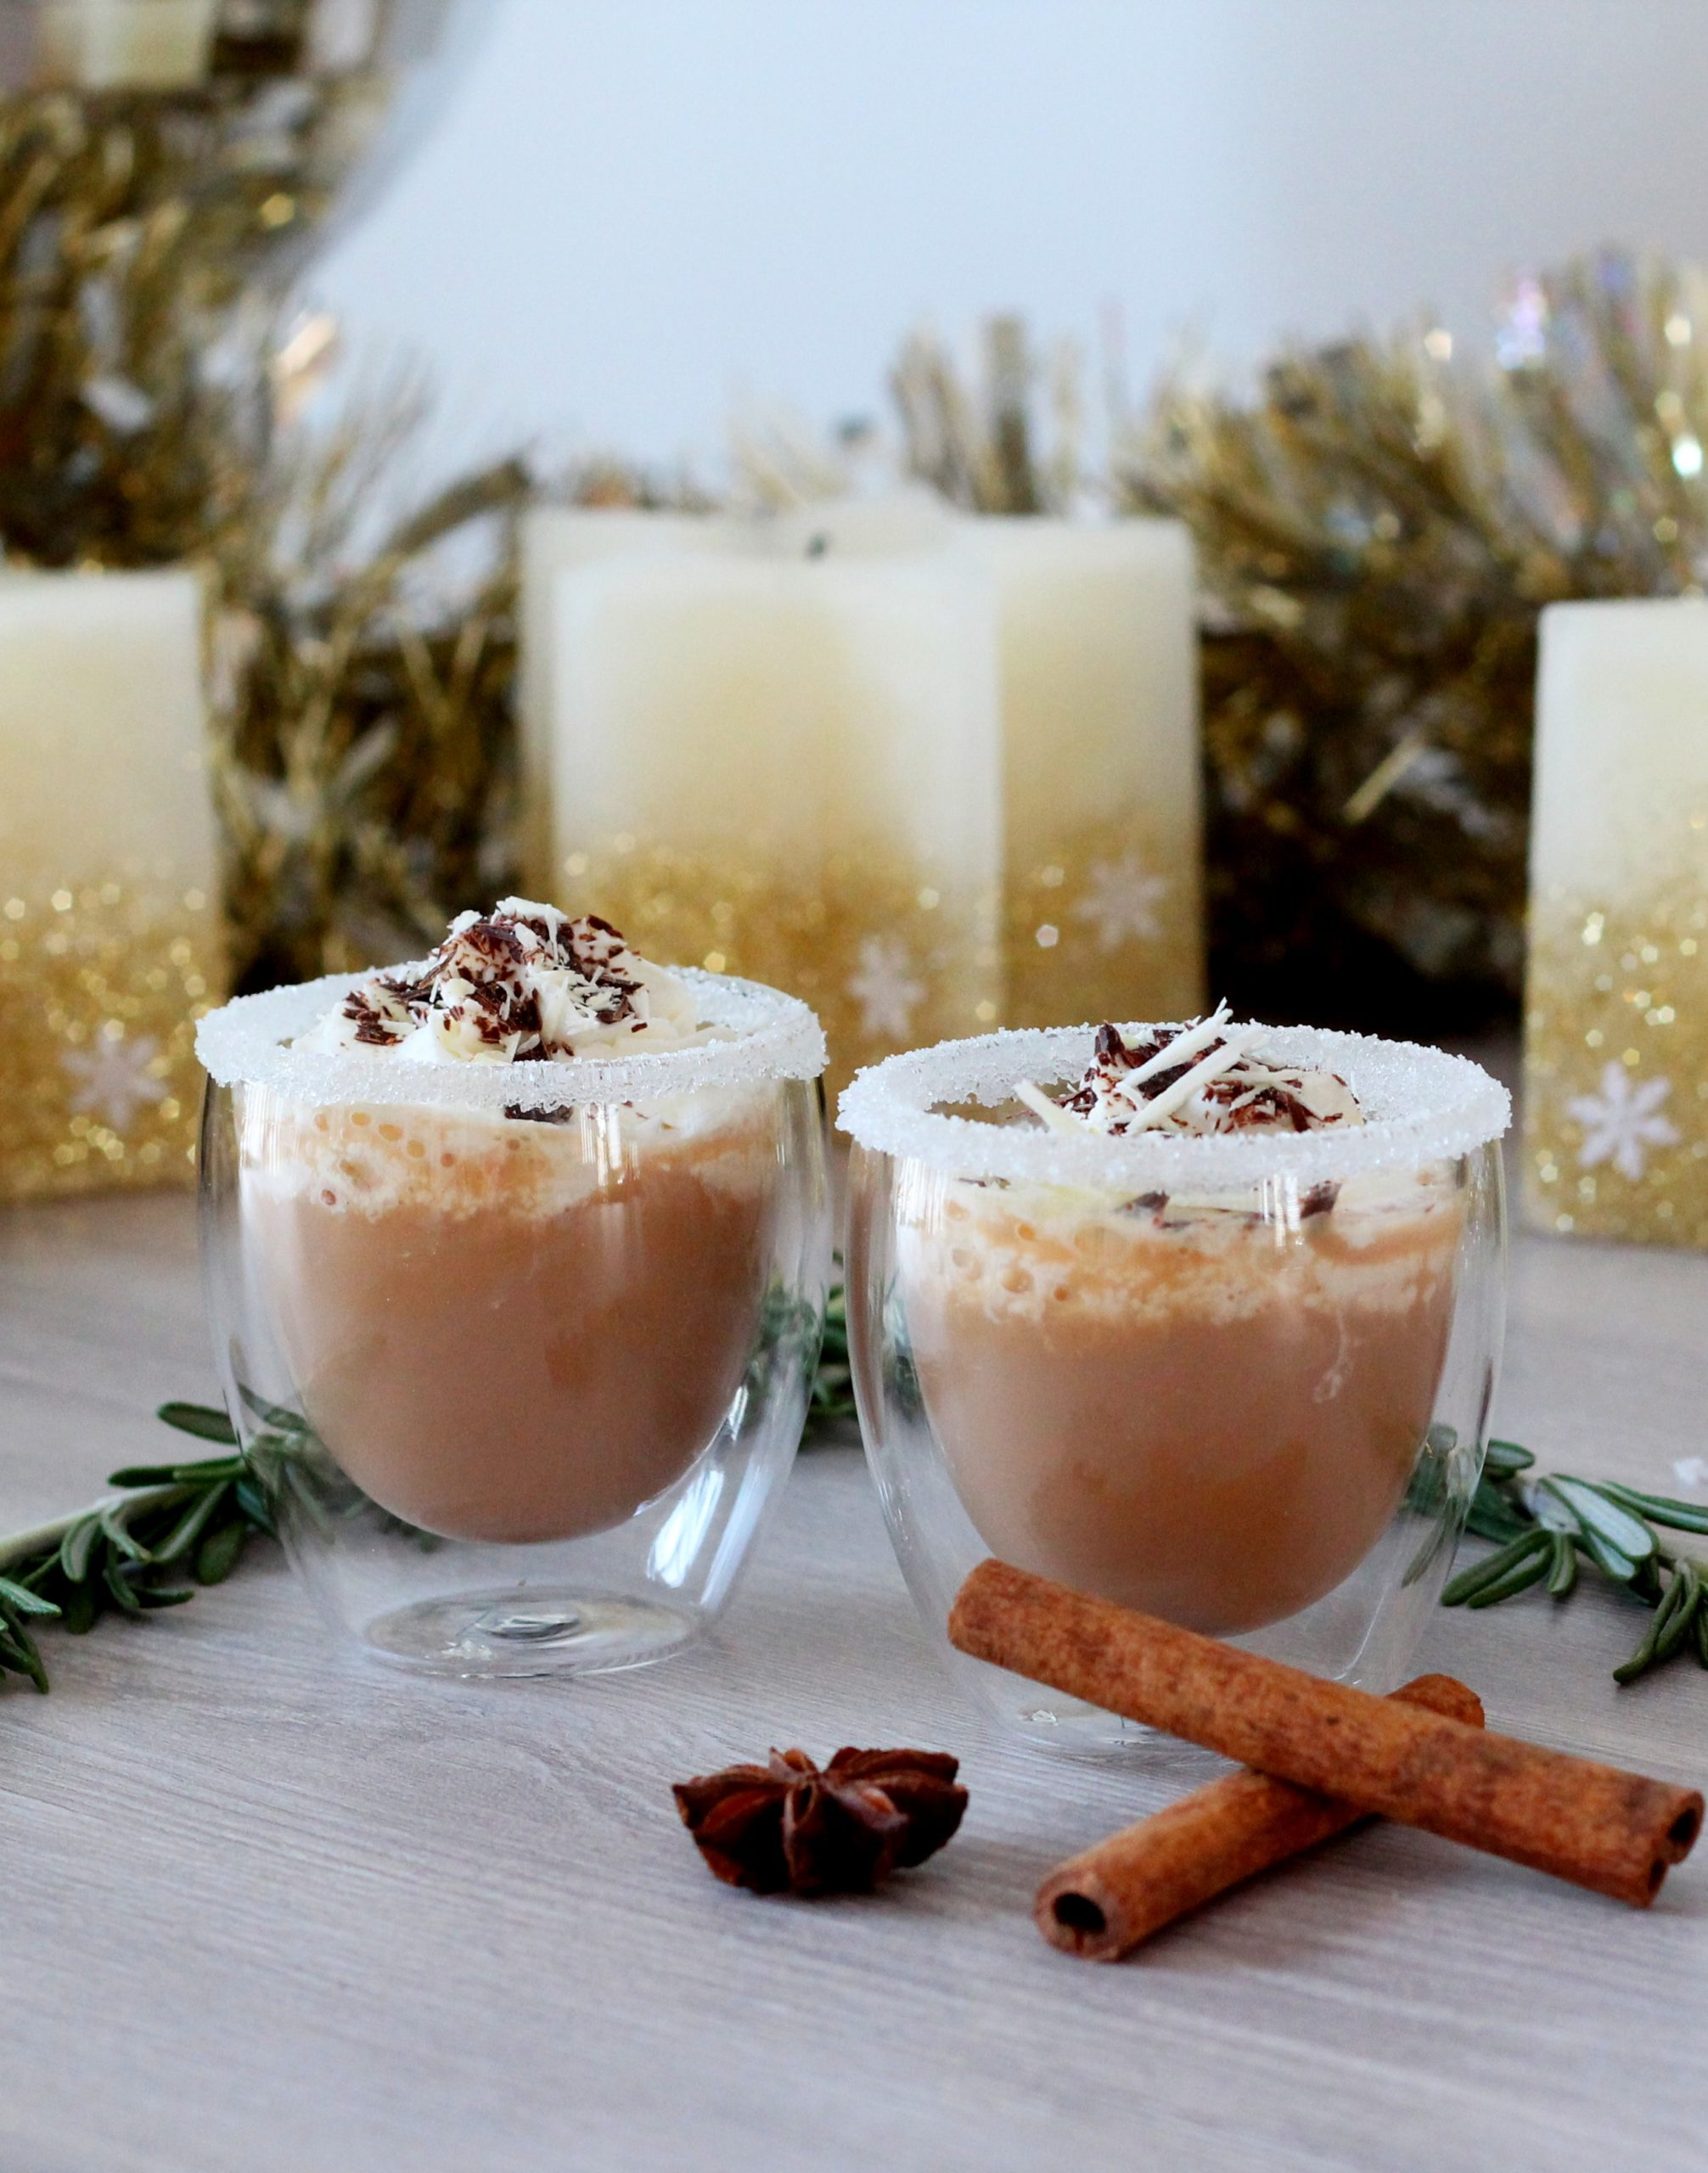 Chocolate drink with whipped cream